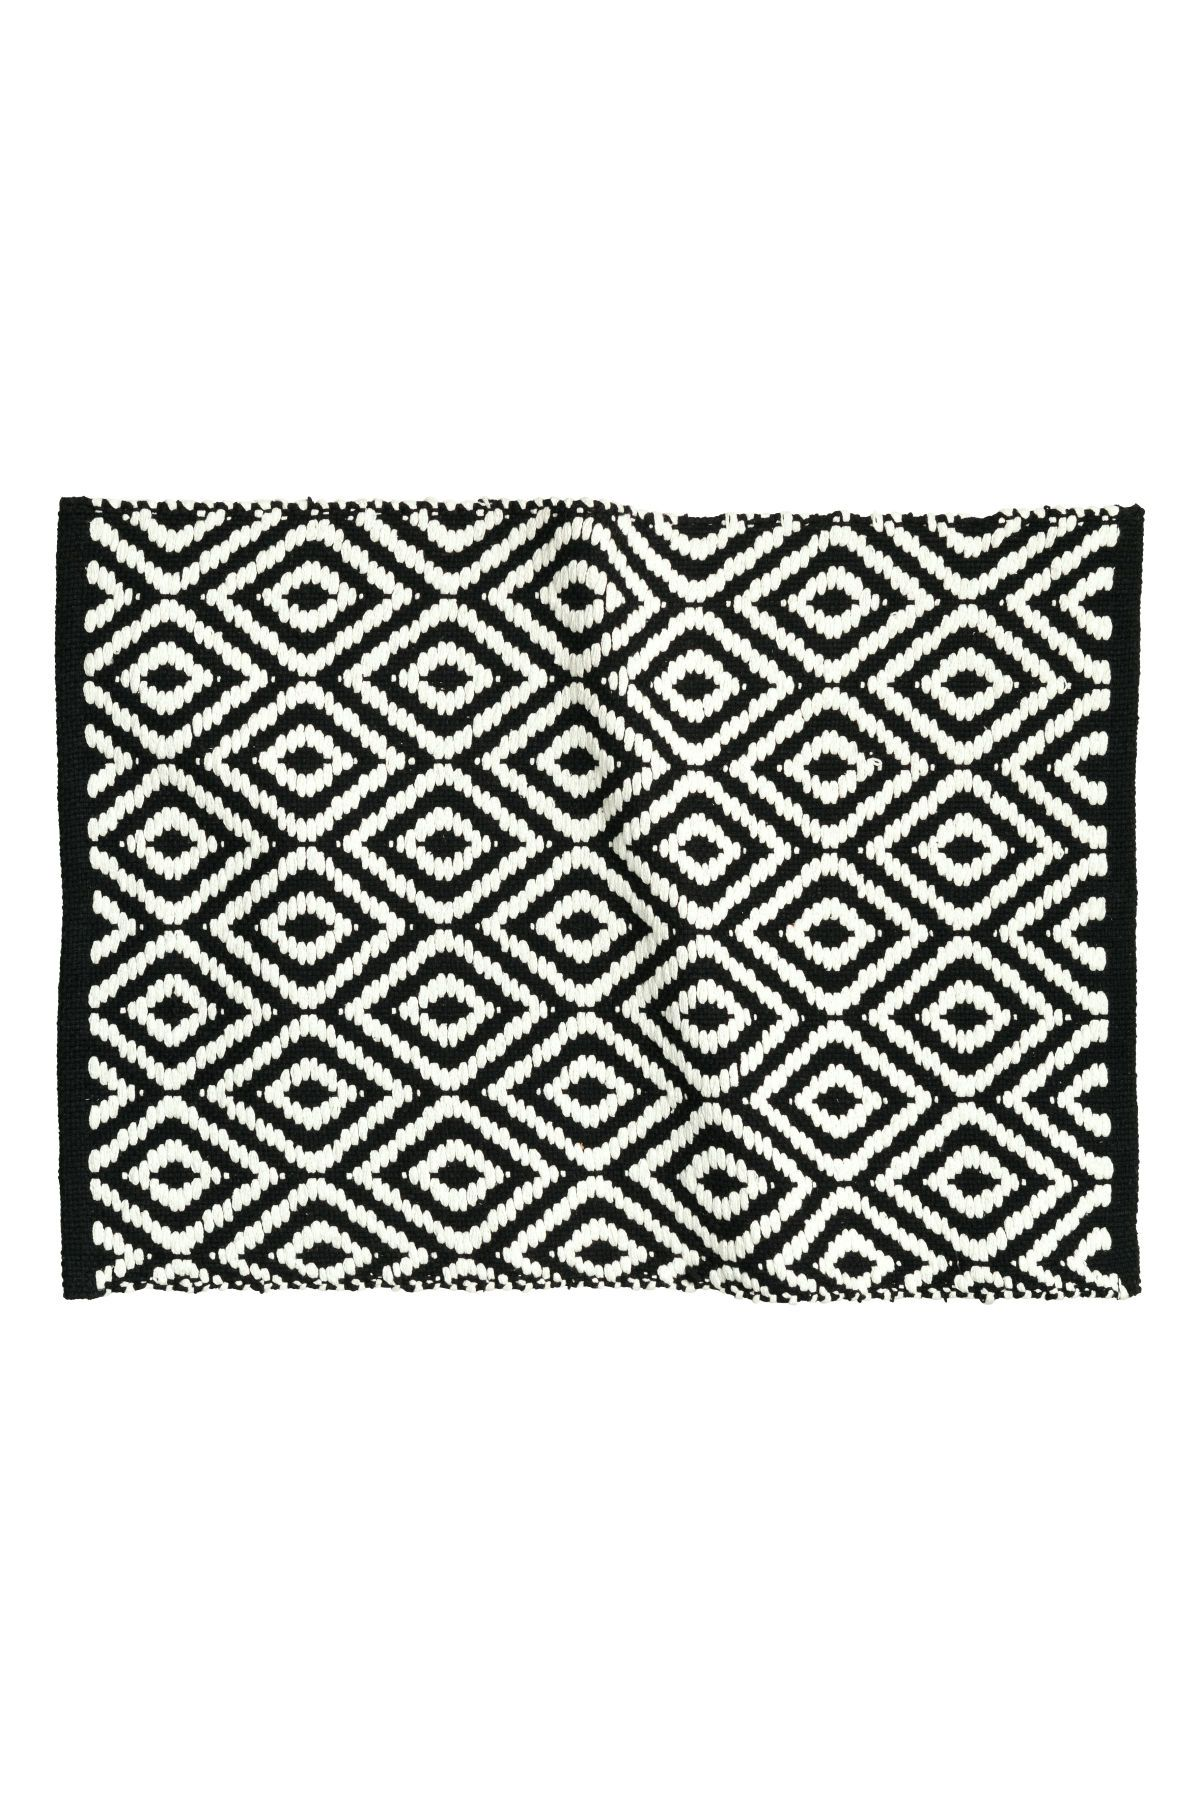 Black Patterned Rectangular Bath Mat In Cotton With A Jacquard